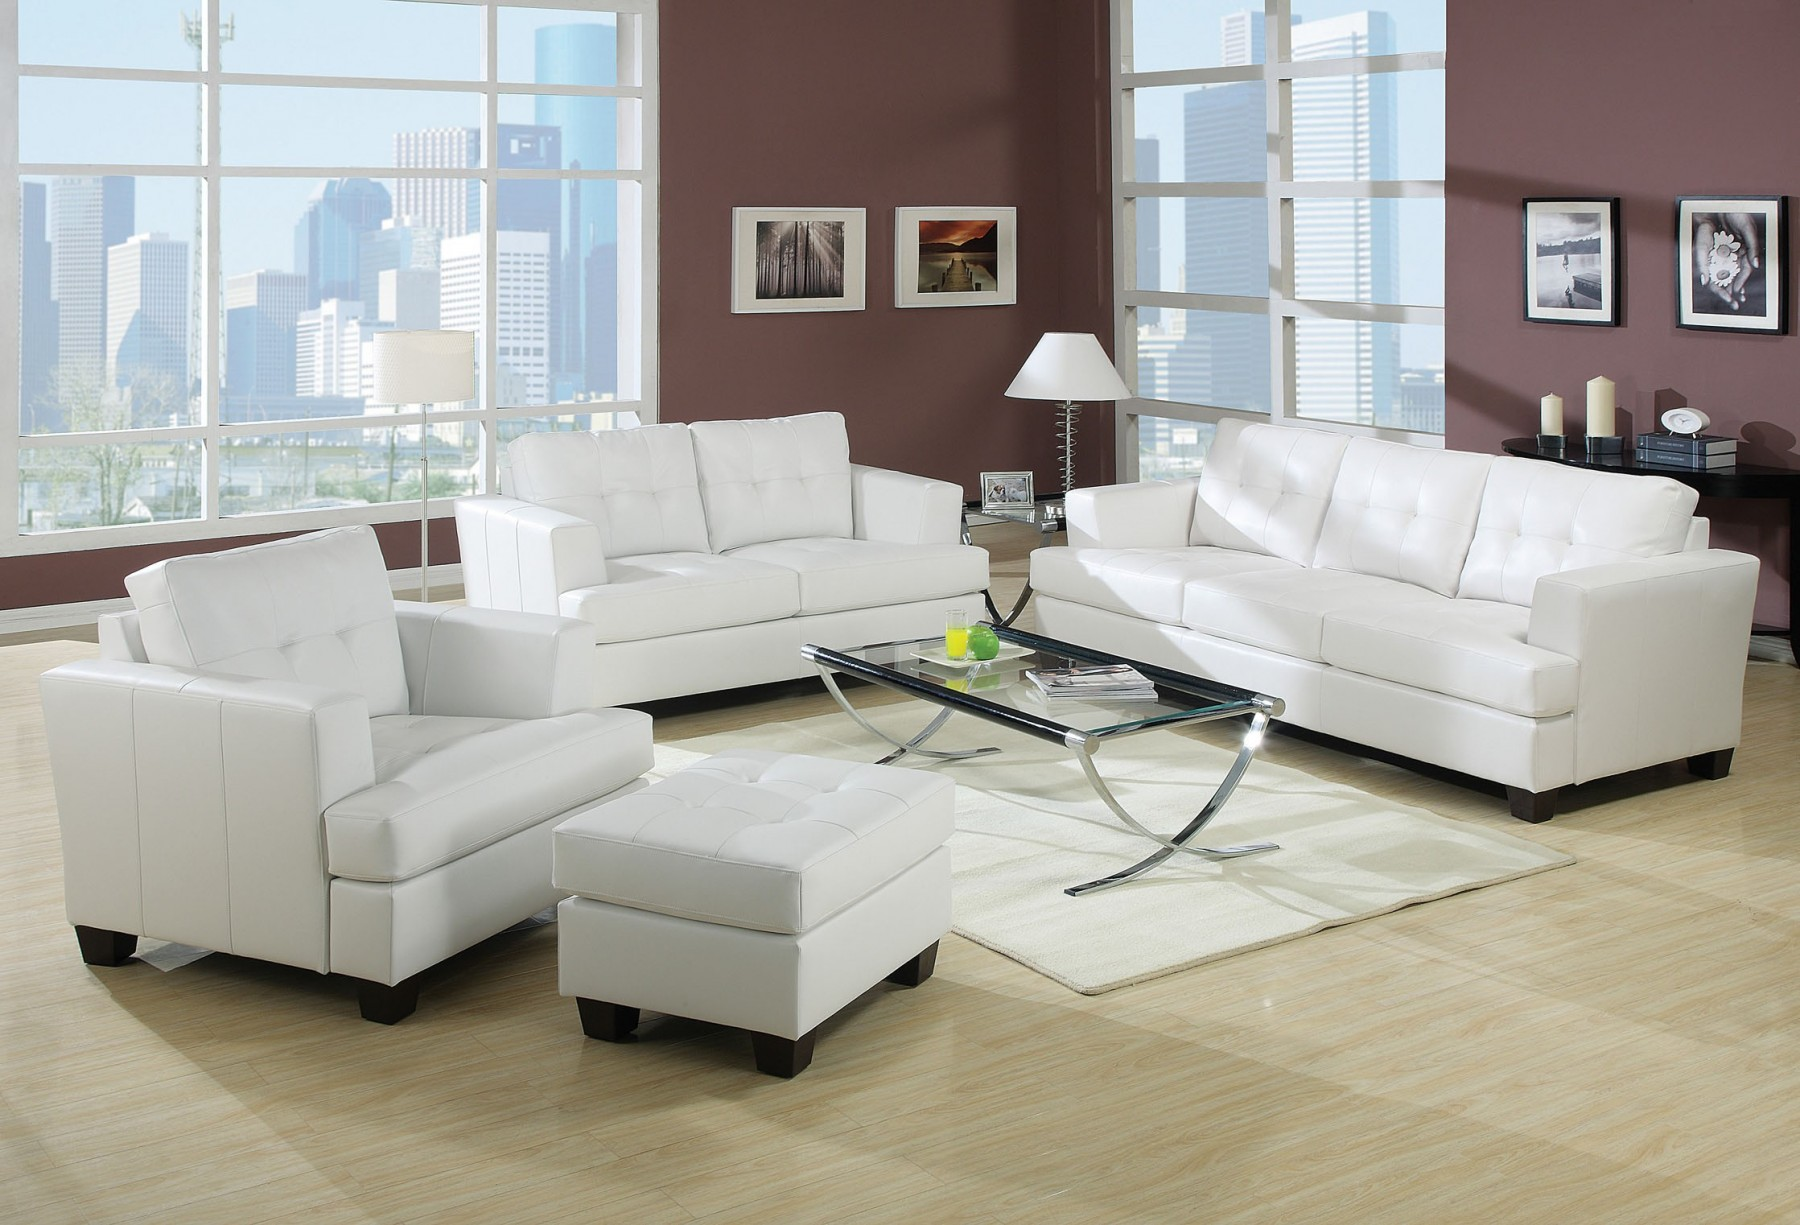 Acme Platinum 4pc Living Room White Bonded Leather Sofa Loveseat Chair  Ottoman